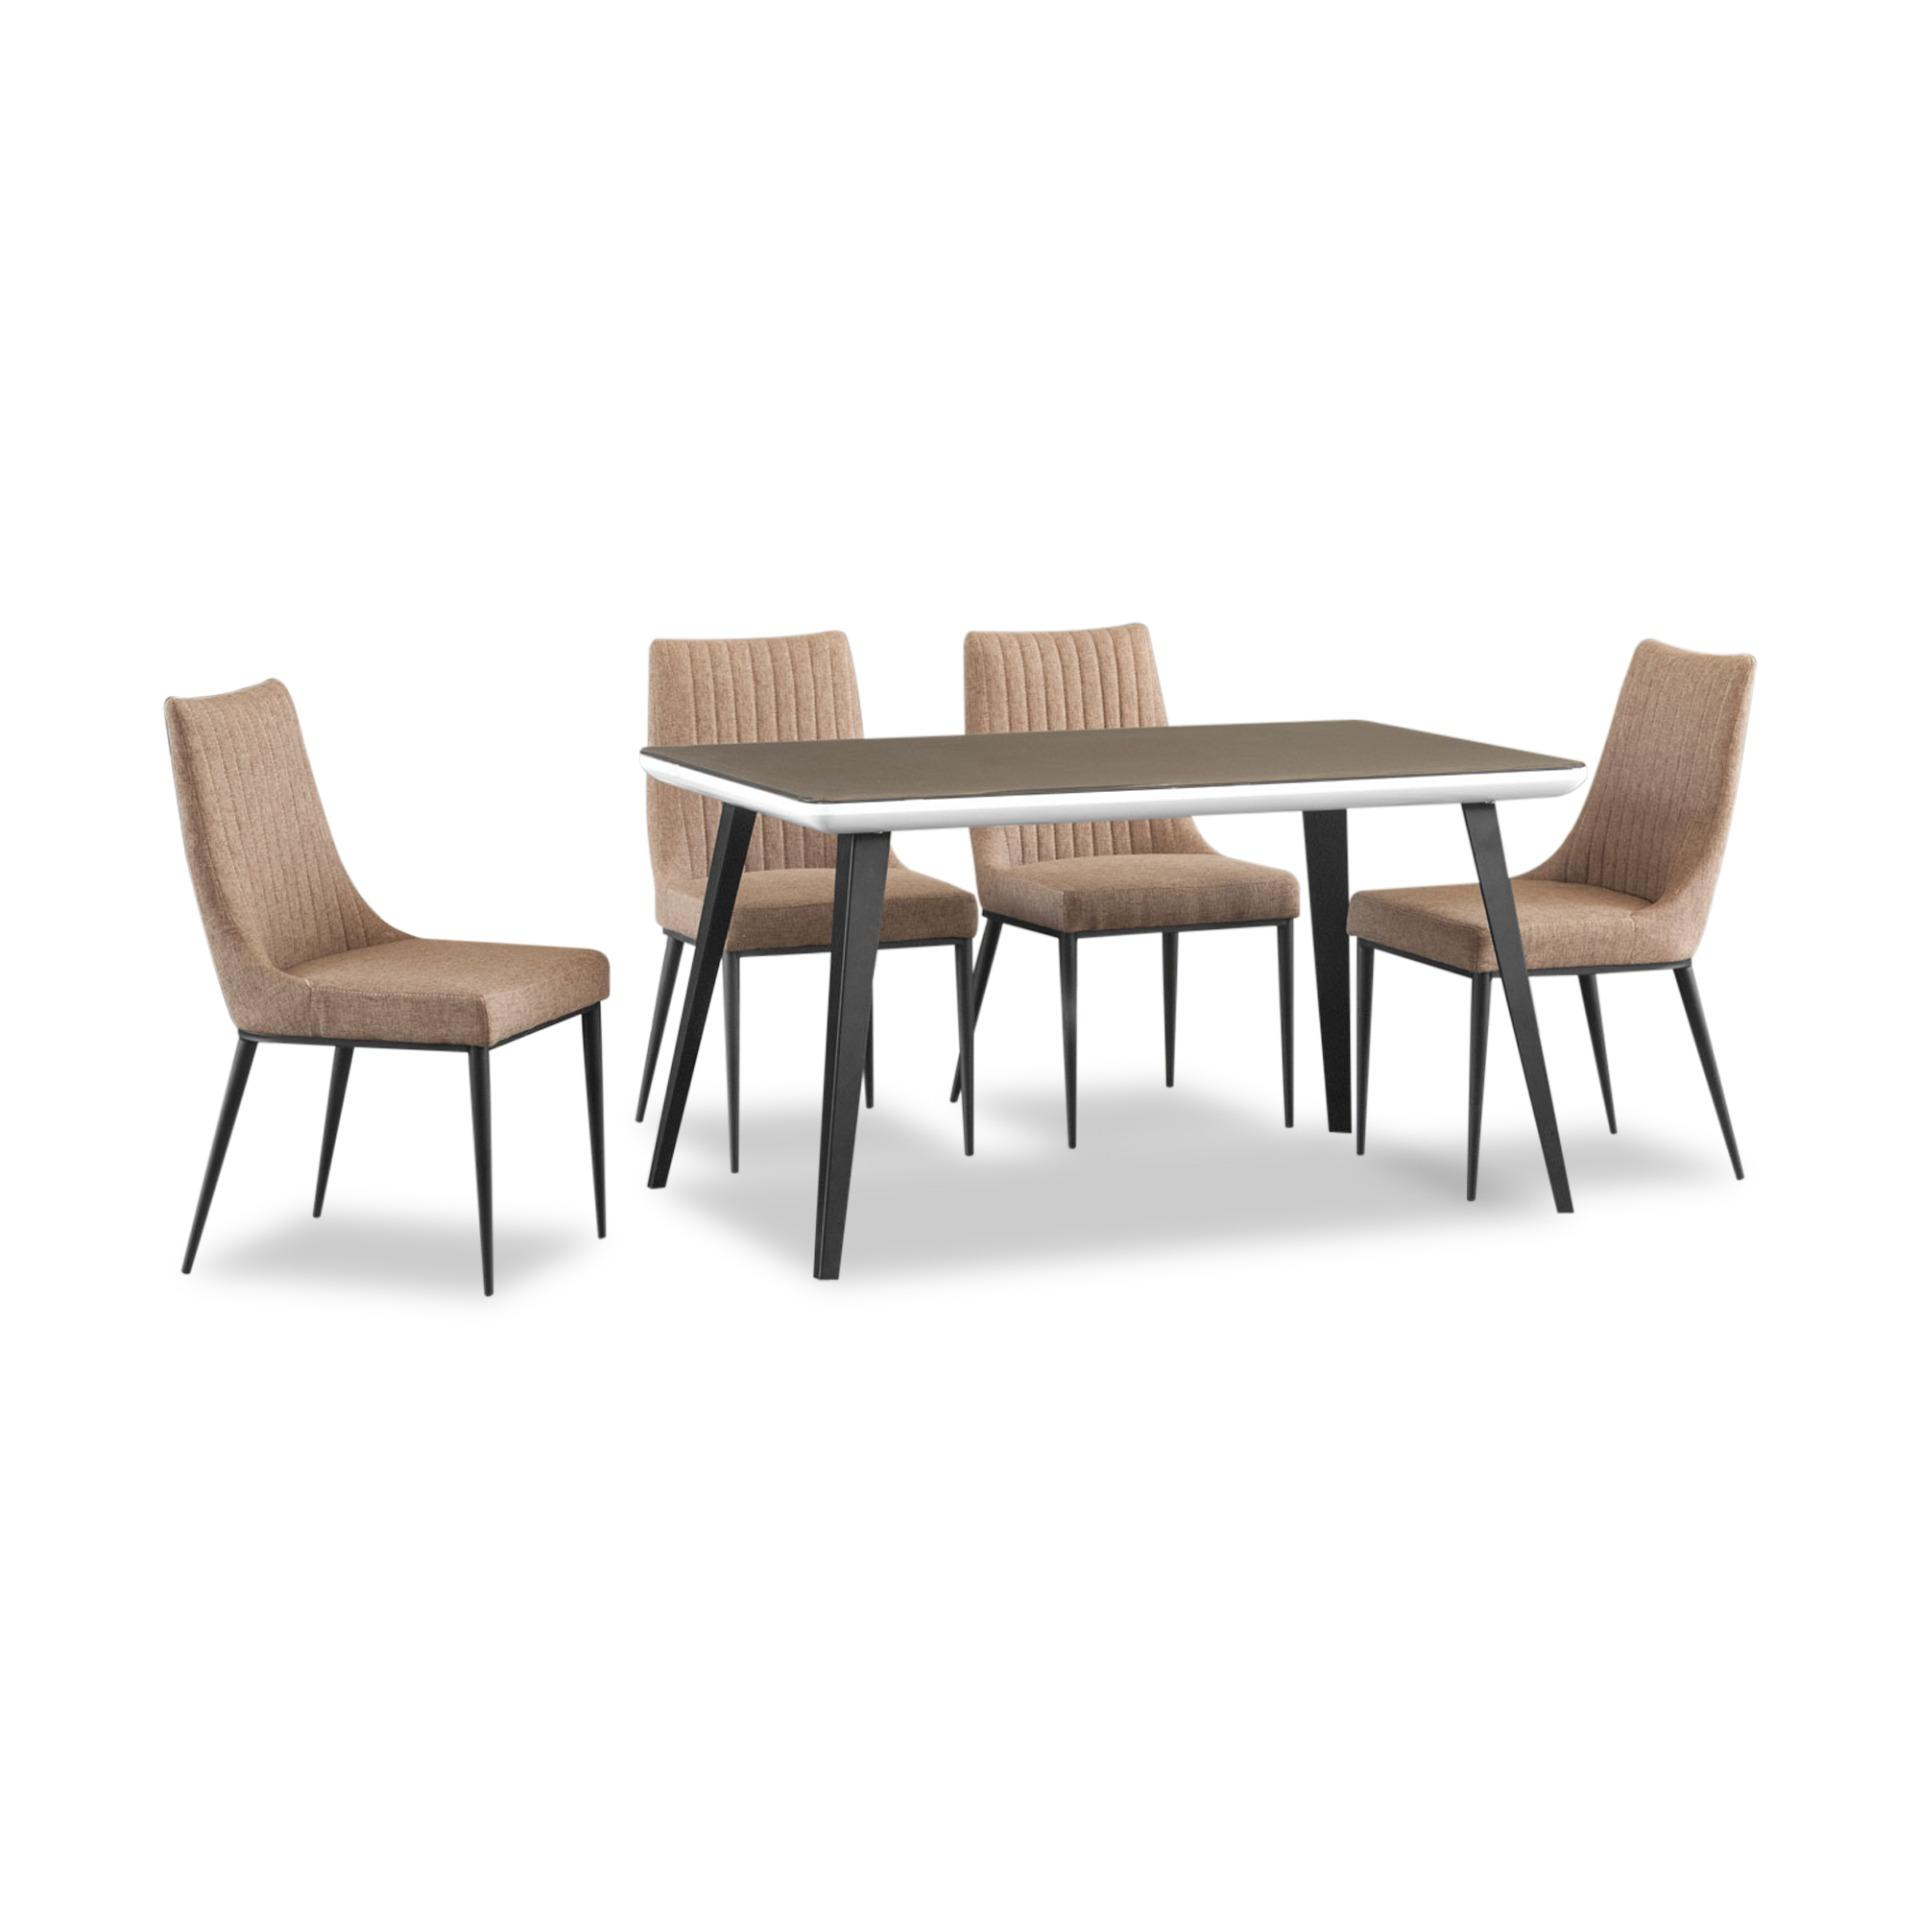 Clara Tempered Glass Top Dining Table + 4 Dining Chairs (FREE DELIVERY)(FREE ASSEMBLY)